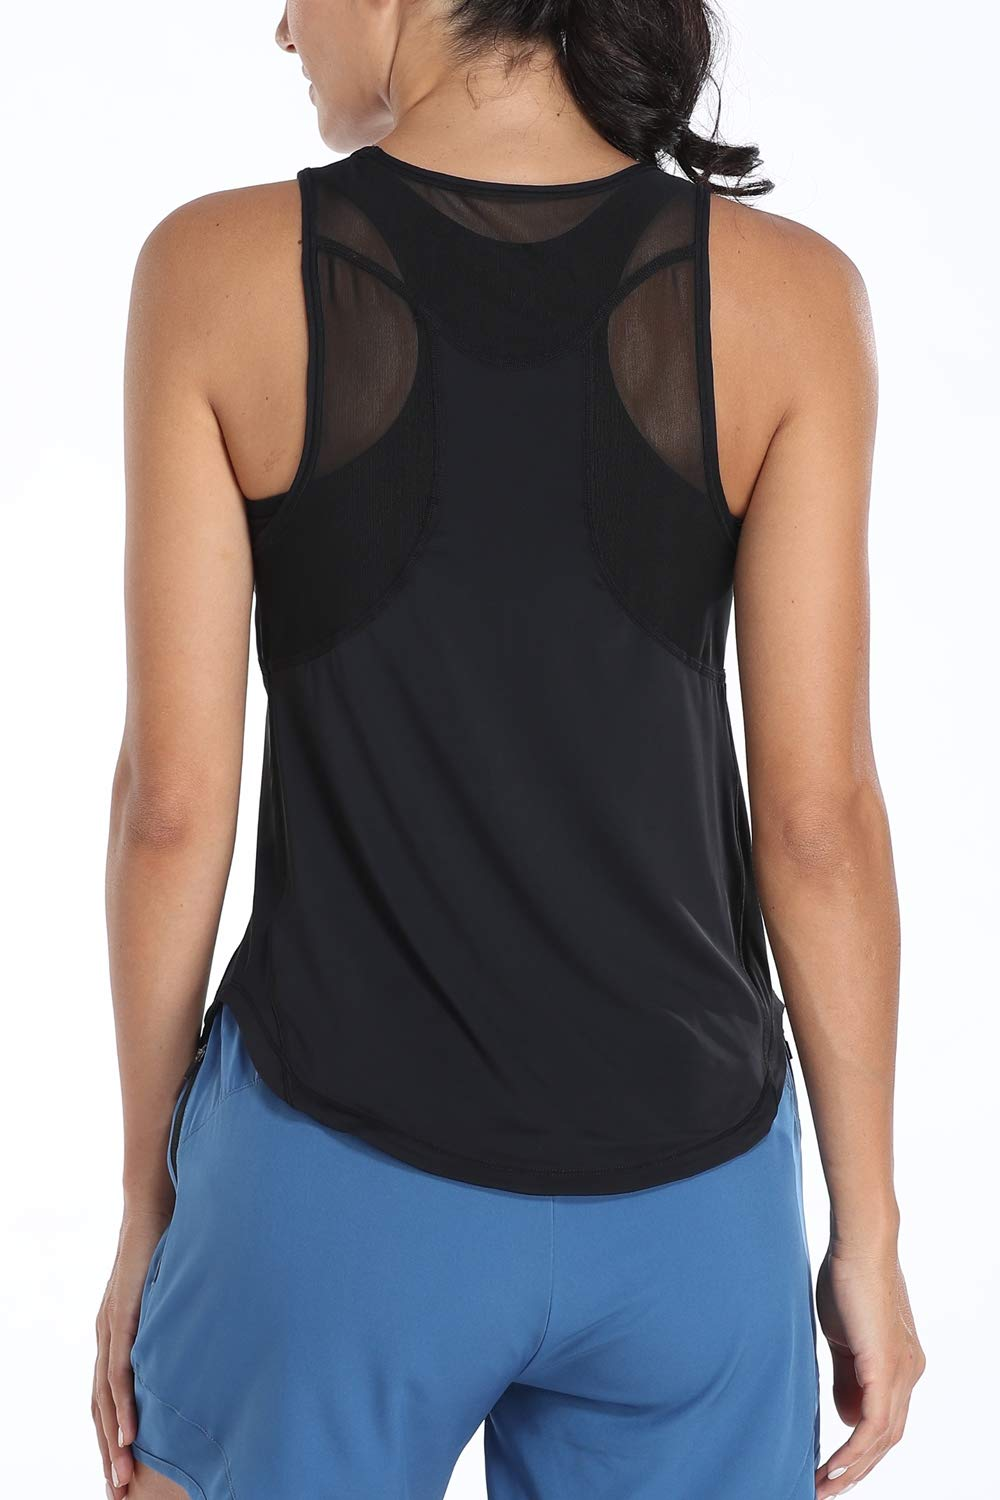 ATTRACO Racerback Workout Tank Tops for Women Yoga Tops Activewear Athletic Shirts